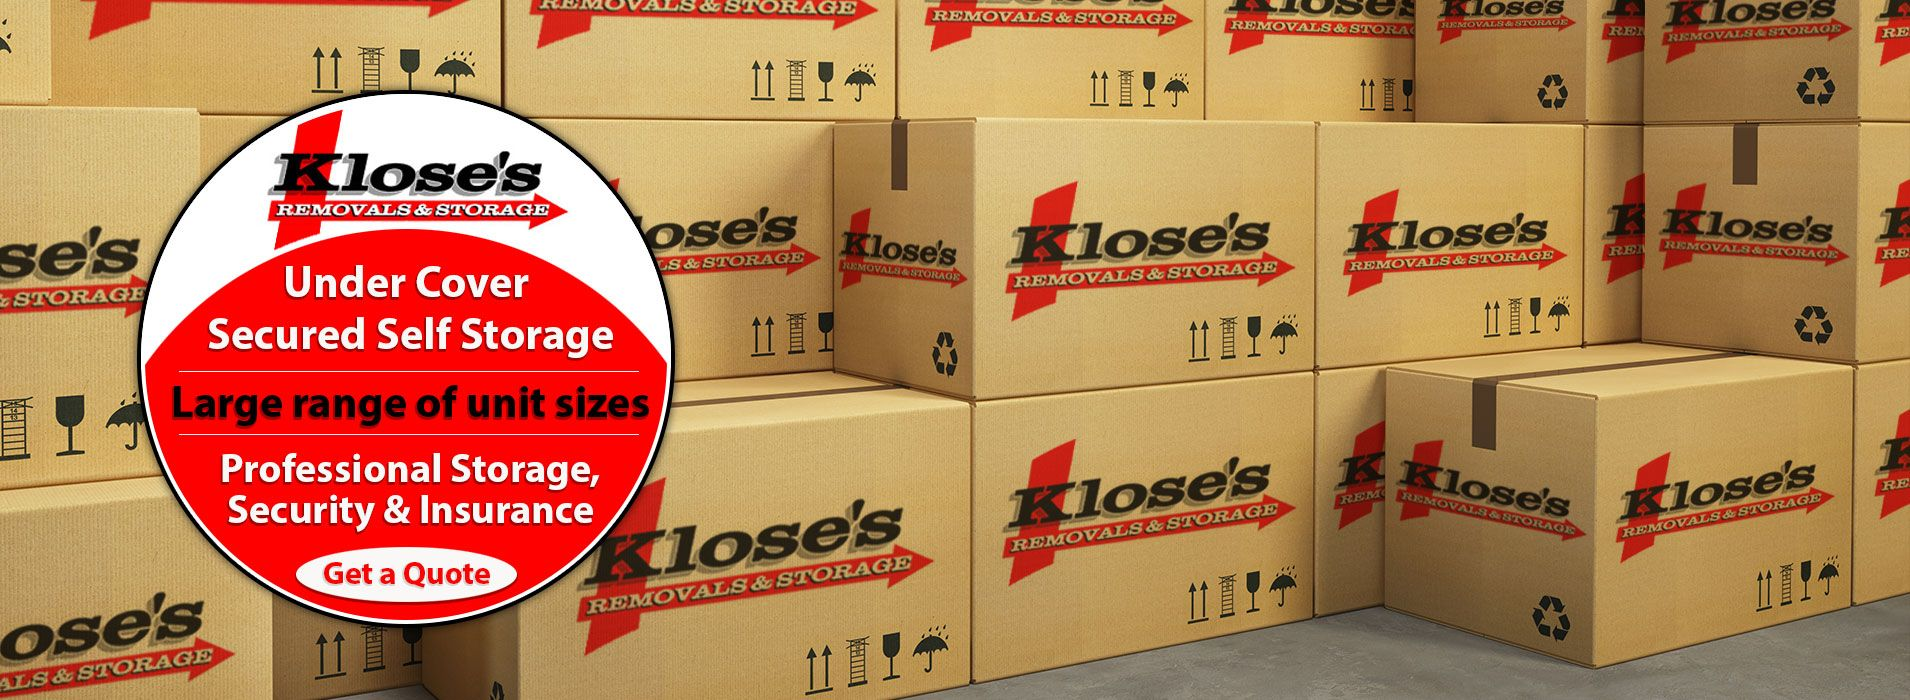 Removal Services In Adelaide Klose S Removals Pty Ltd